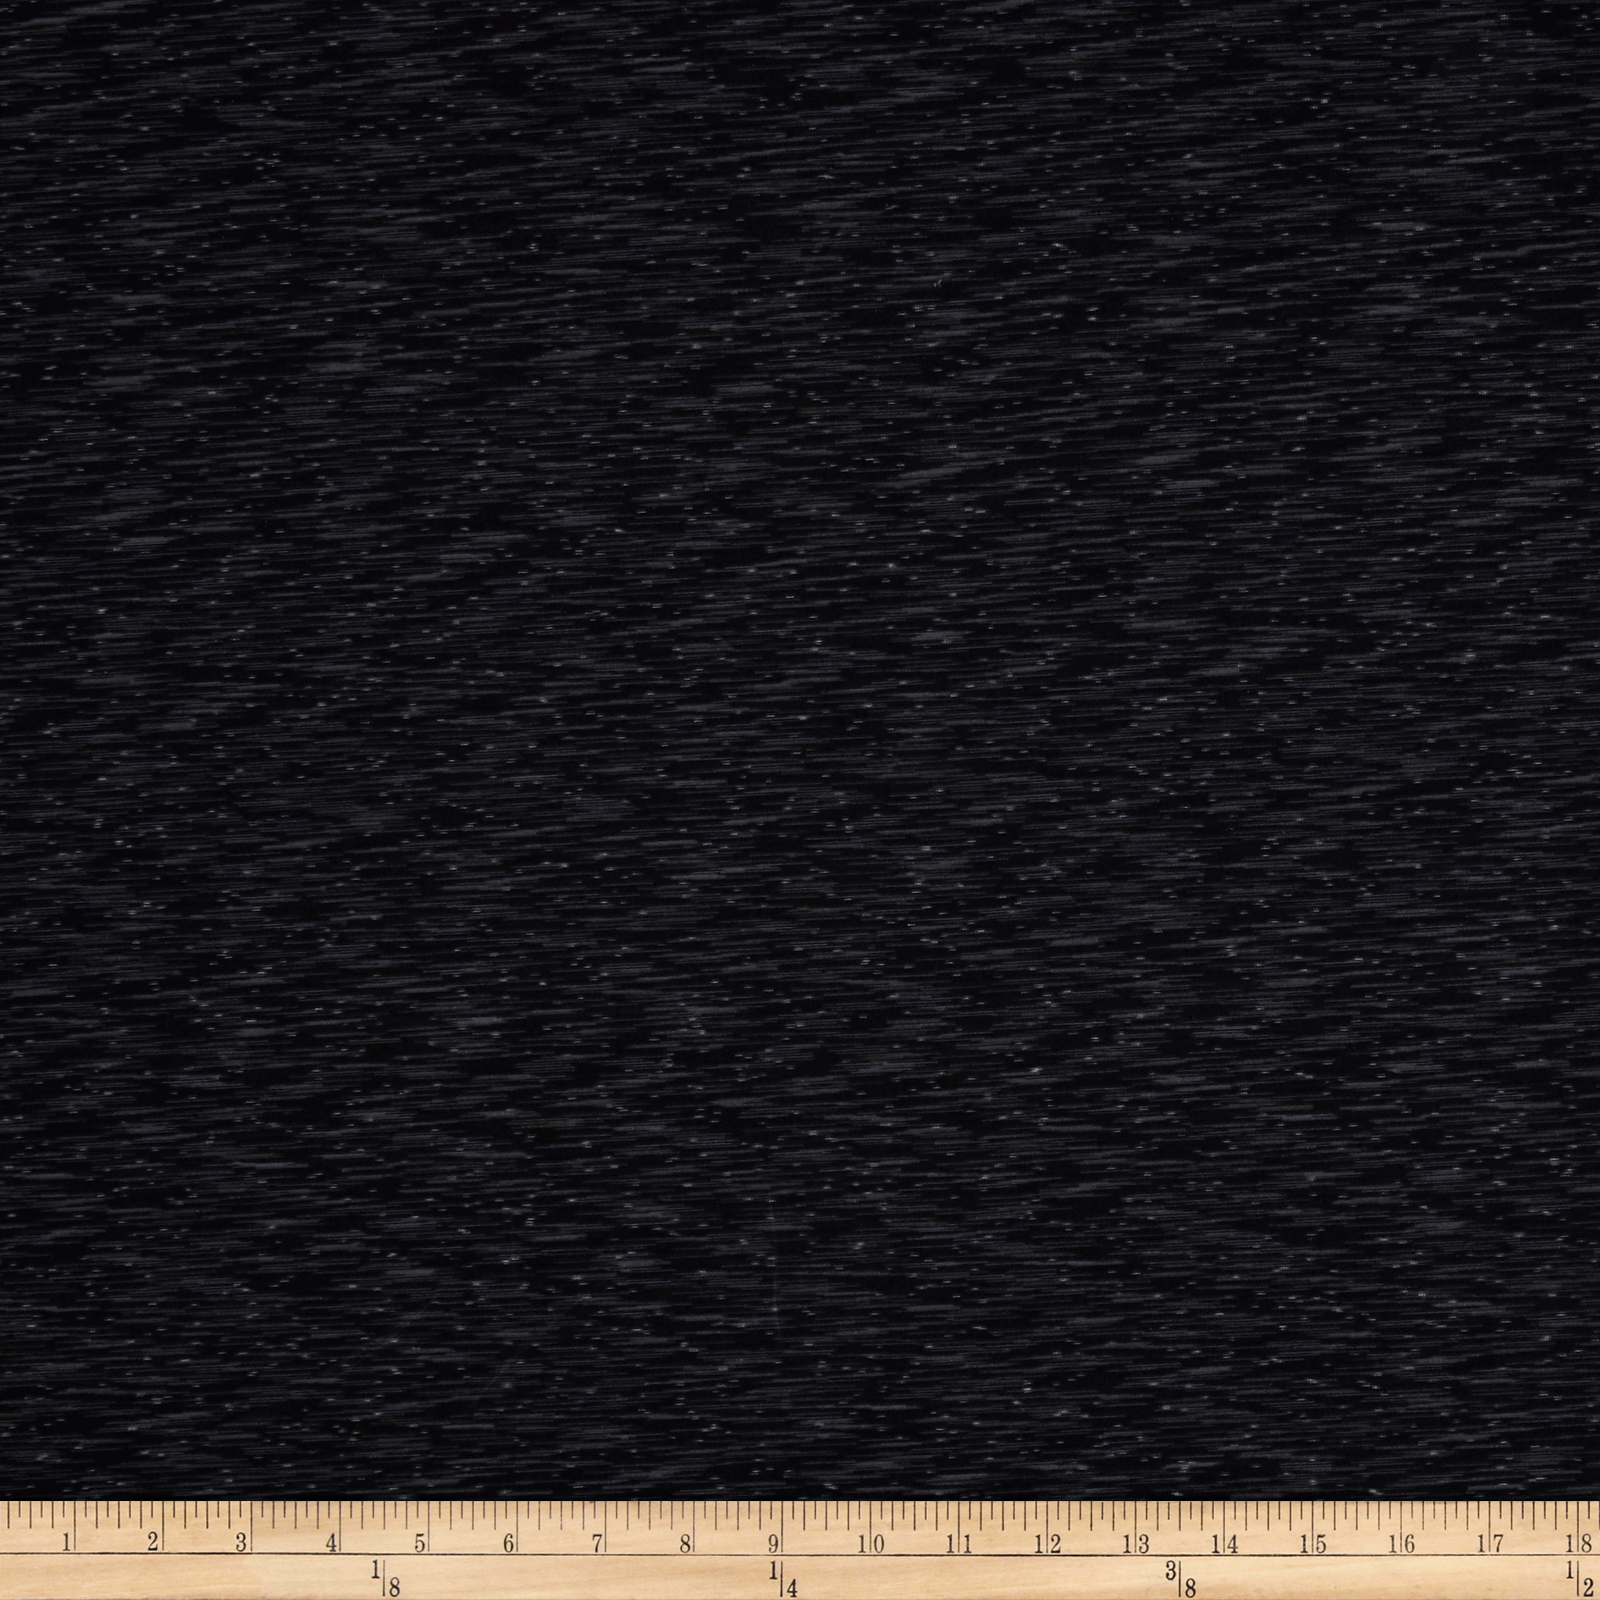 Pine Crest Fabrics Strata Athletic Knit Black/Gray/White 0539029